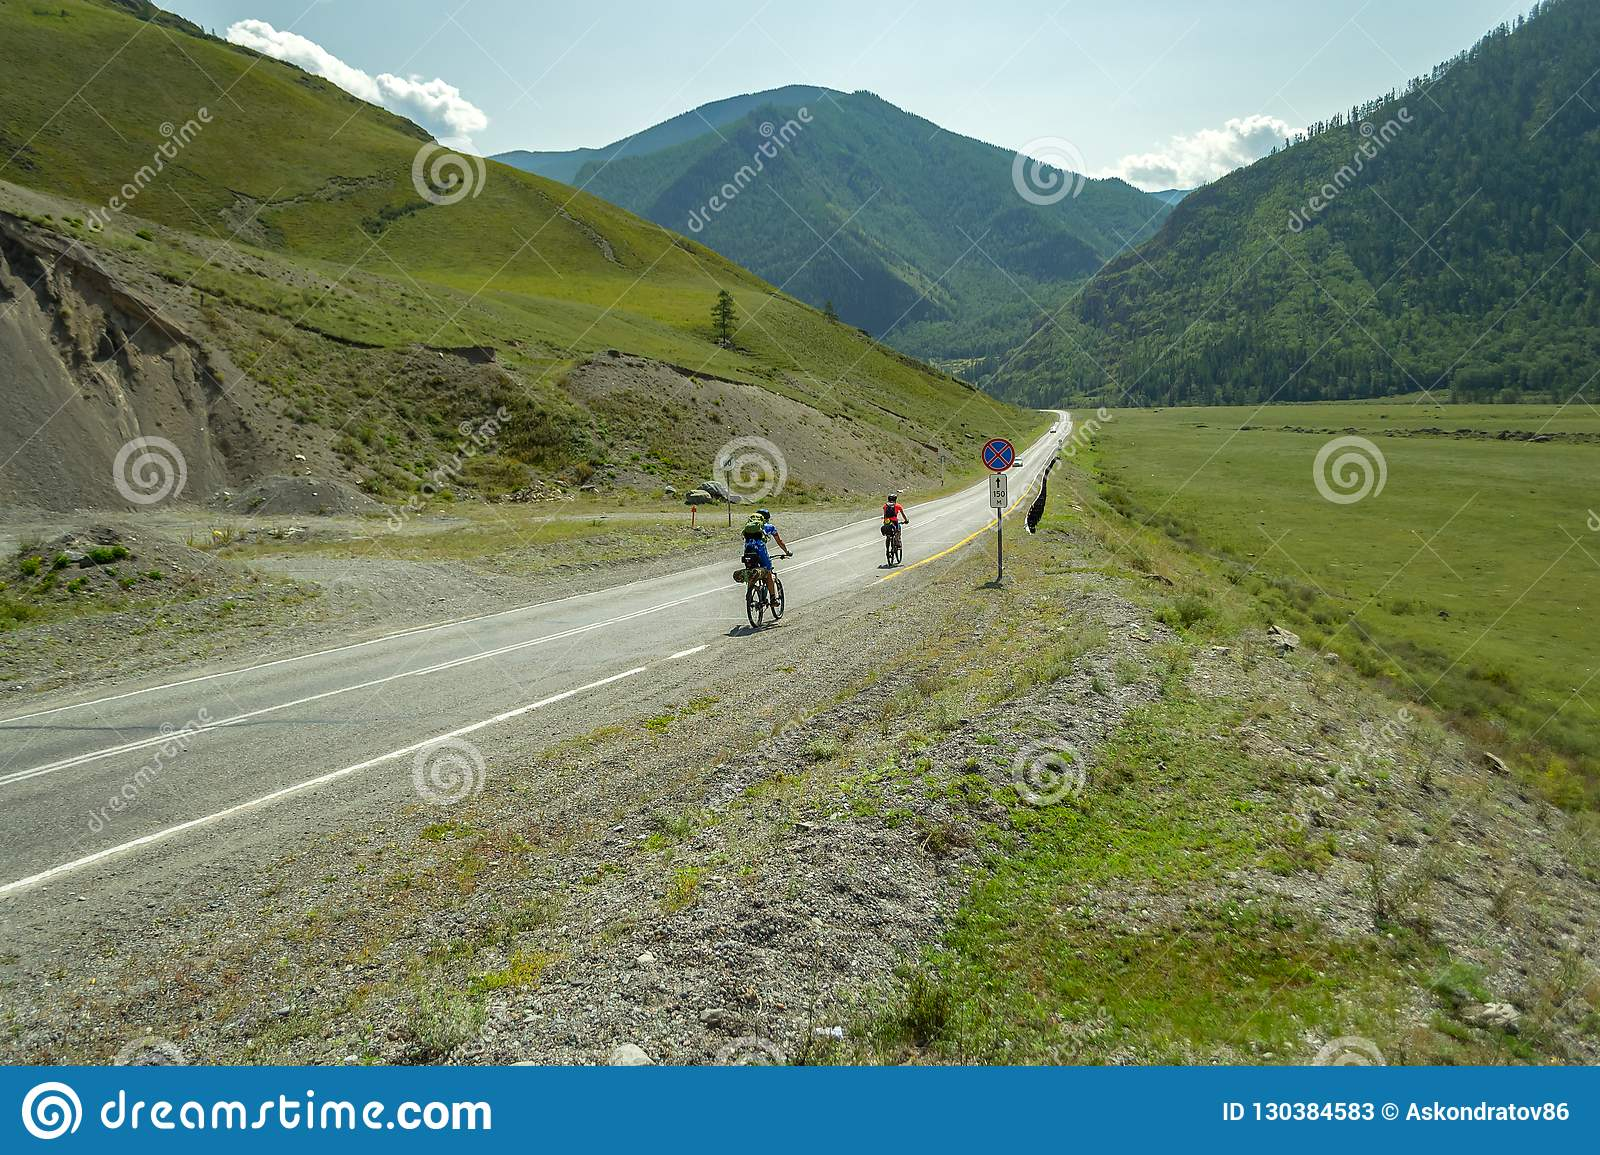 A couple of man and woman in helmets ride on sports bicycles on